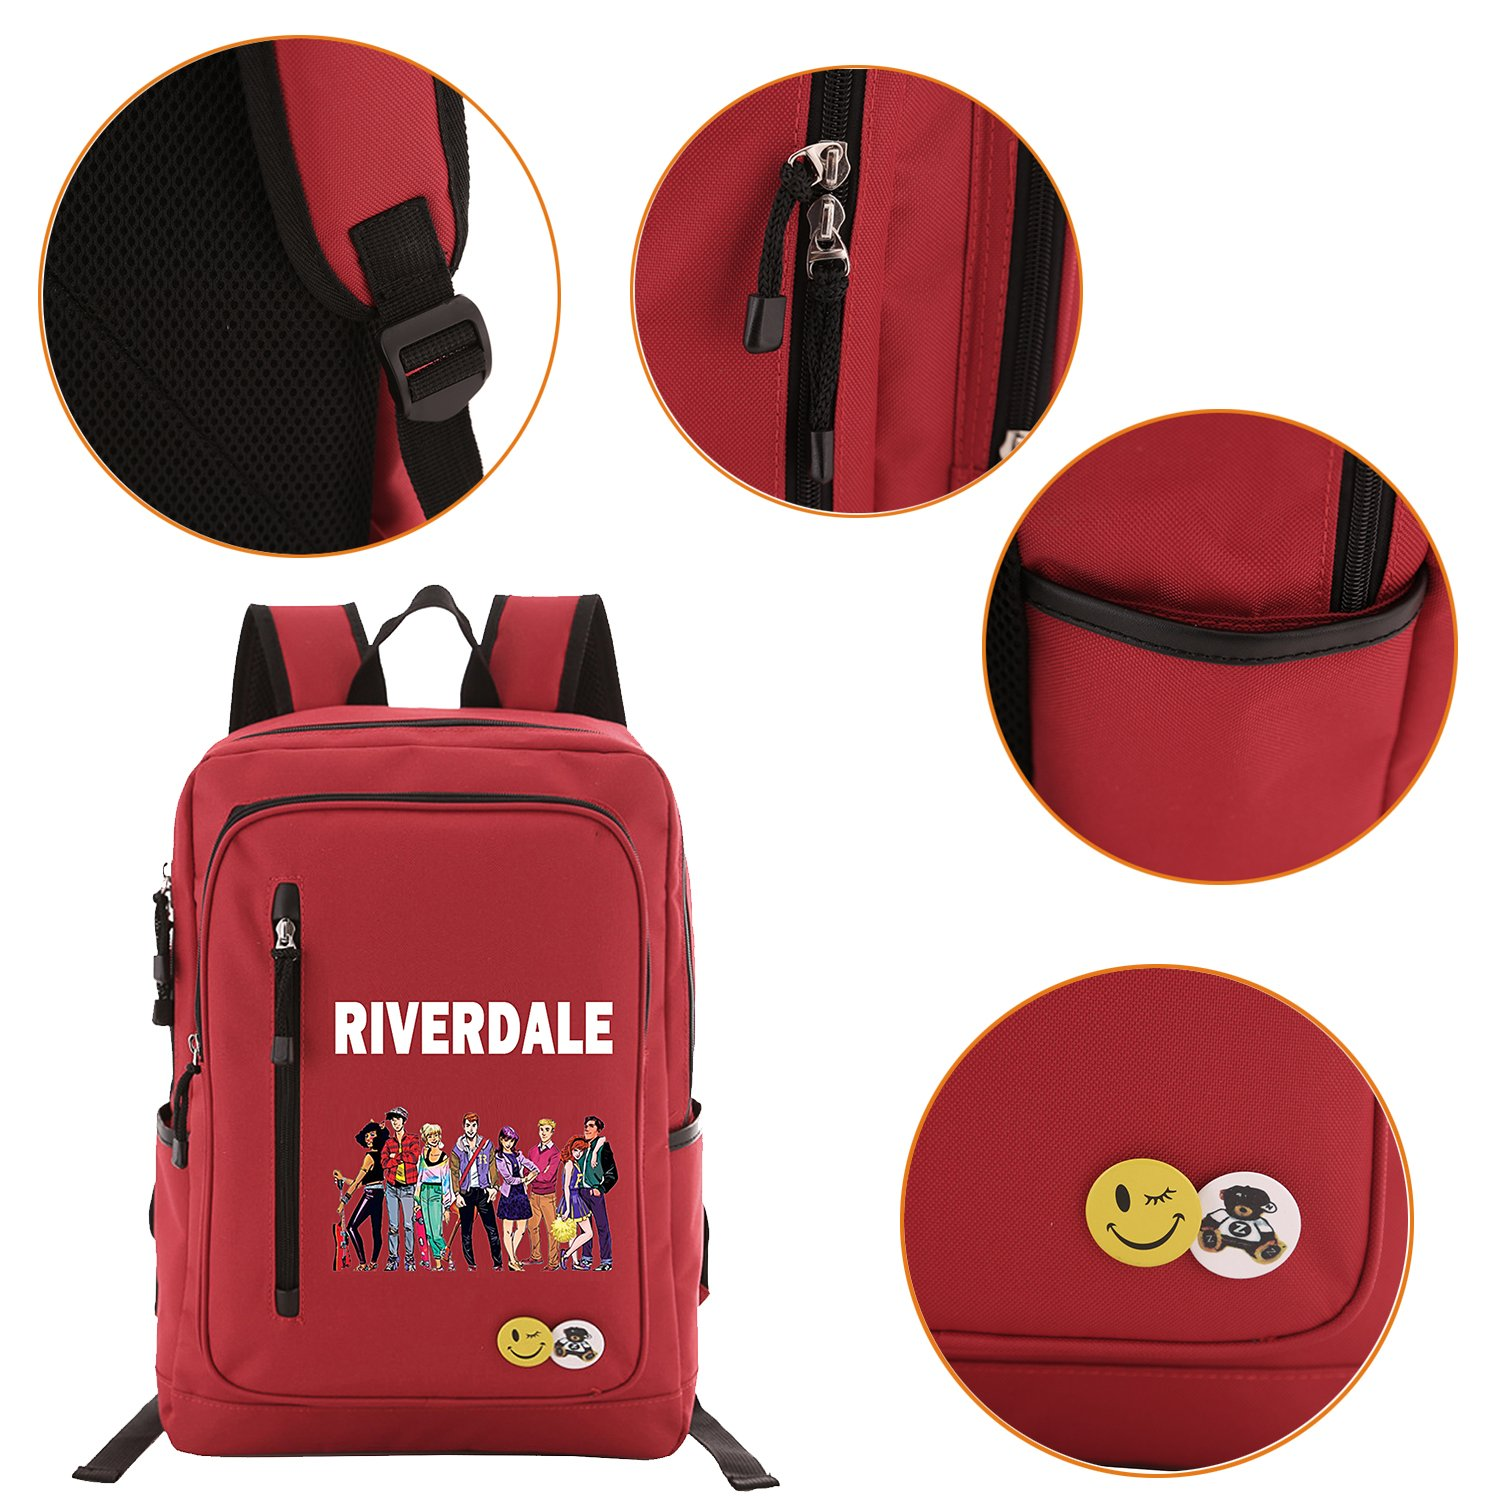 Amazon.com: Riverdale Backpack School Bags for Boys Girls, Lightweight Book Bag Multi-Functional Water-Resistant Casual Trekking Rucksack, Sports Daypack ...